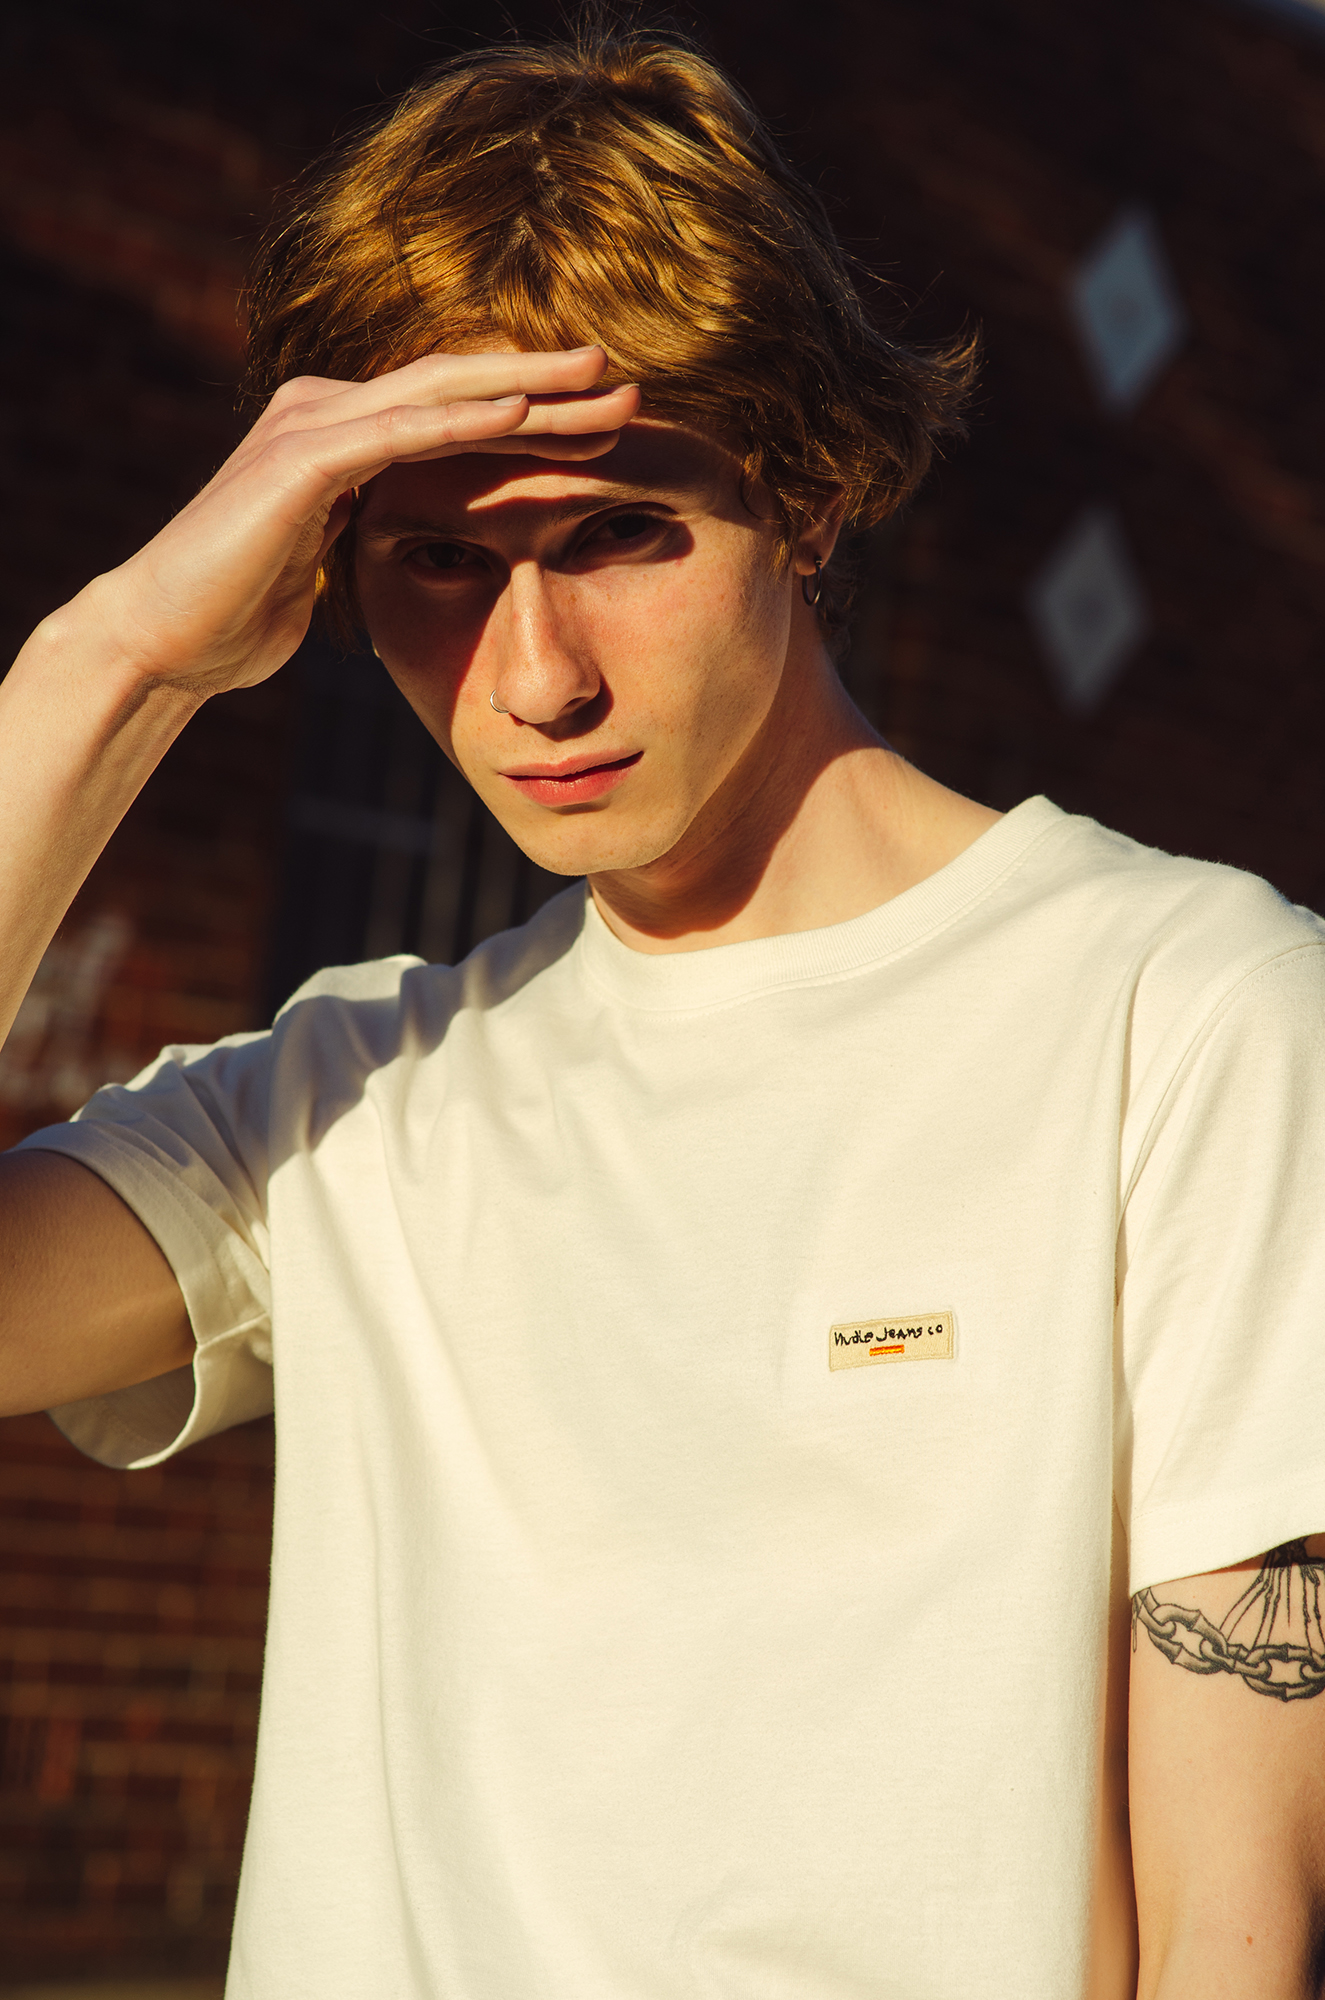 Aston Creus for Well Made Clothes ethical menswear campaign